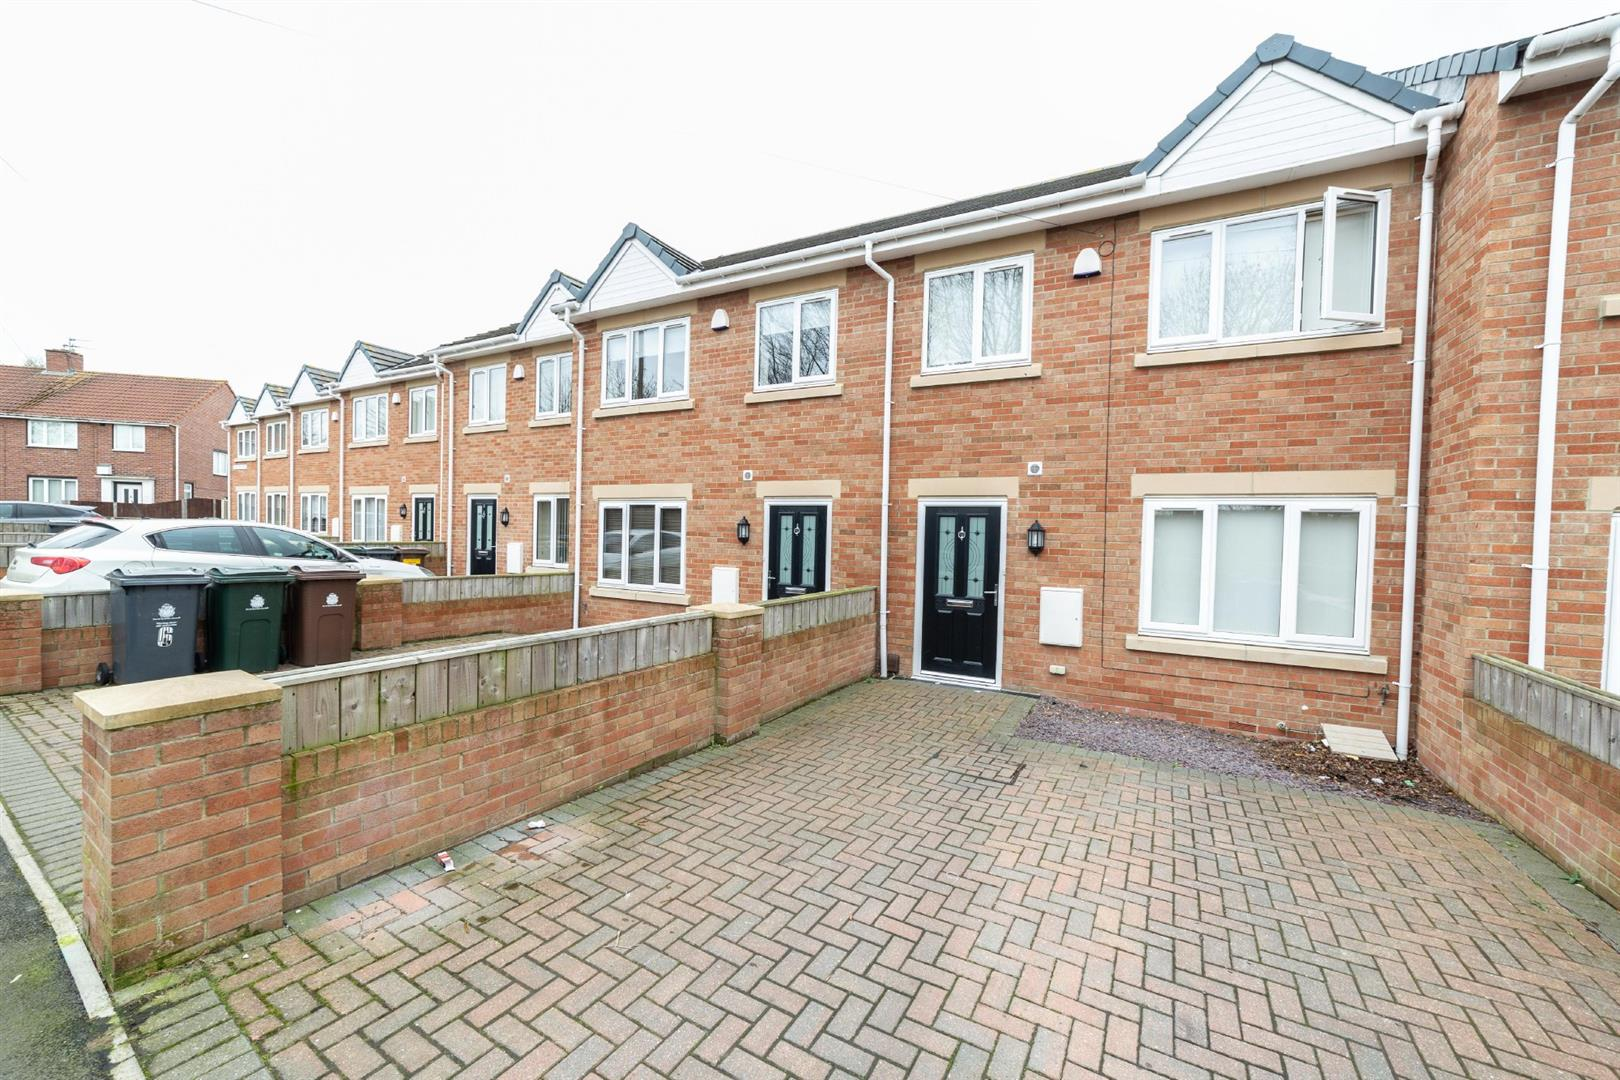 2 bed terraced house to rent in Willington Mews, Wallsend, NE28